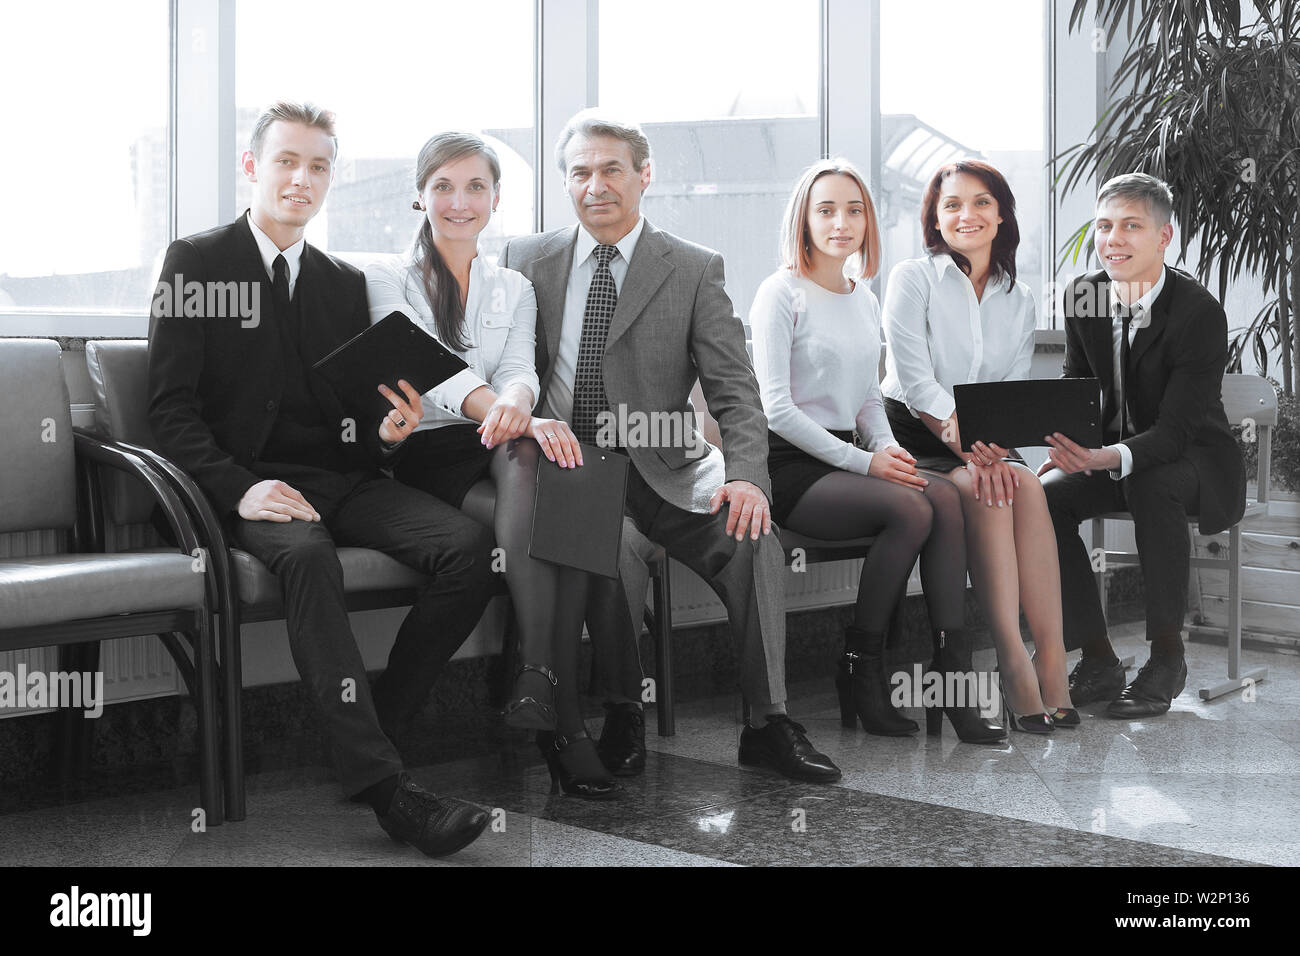 close up.professional business team sitting in the lobby of the office. - Stock Image